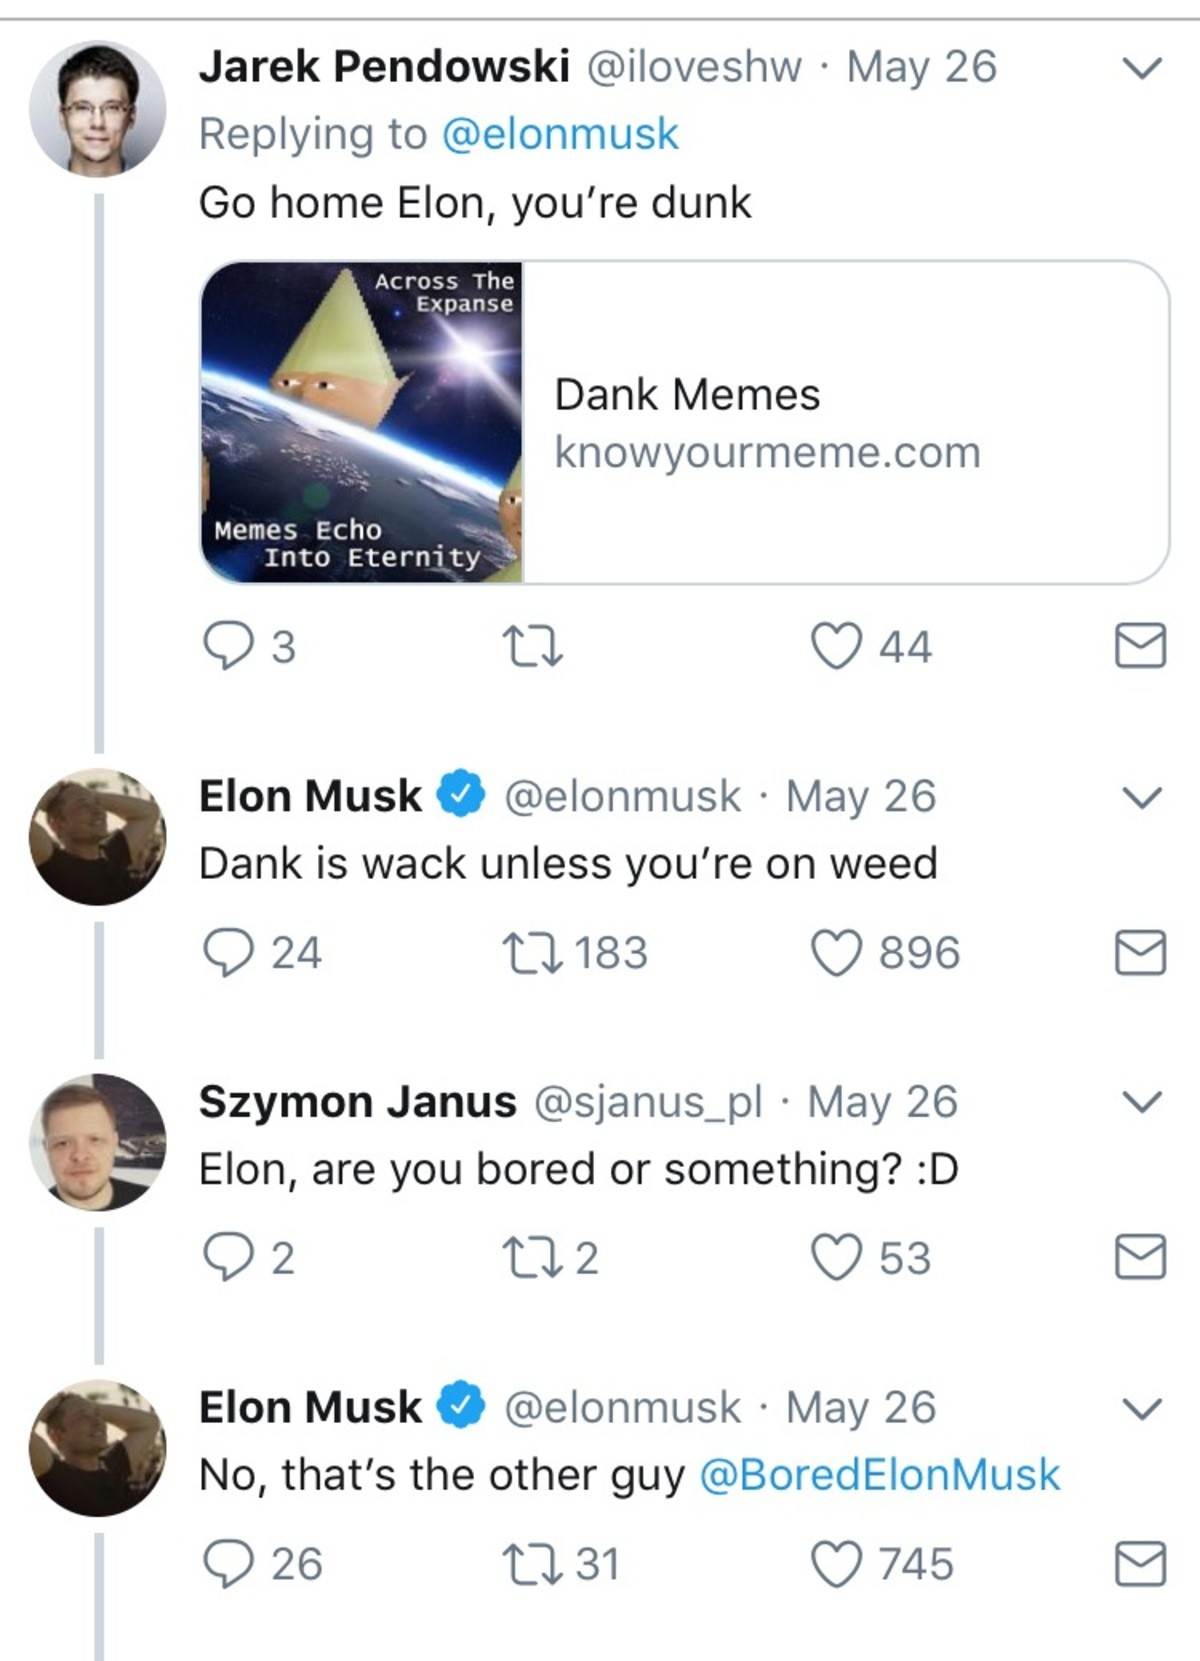 hallowed cynical Starling. Is this even real life anymore?. Replying to @ Go home Hon, you' re dunk Dank Memes Echo l Into Eternety - Elon Musk (iii) . IN/ lay